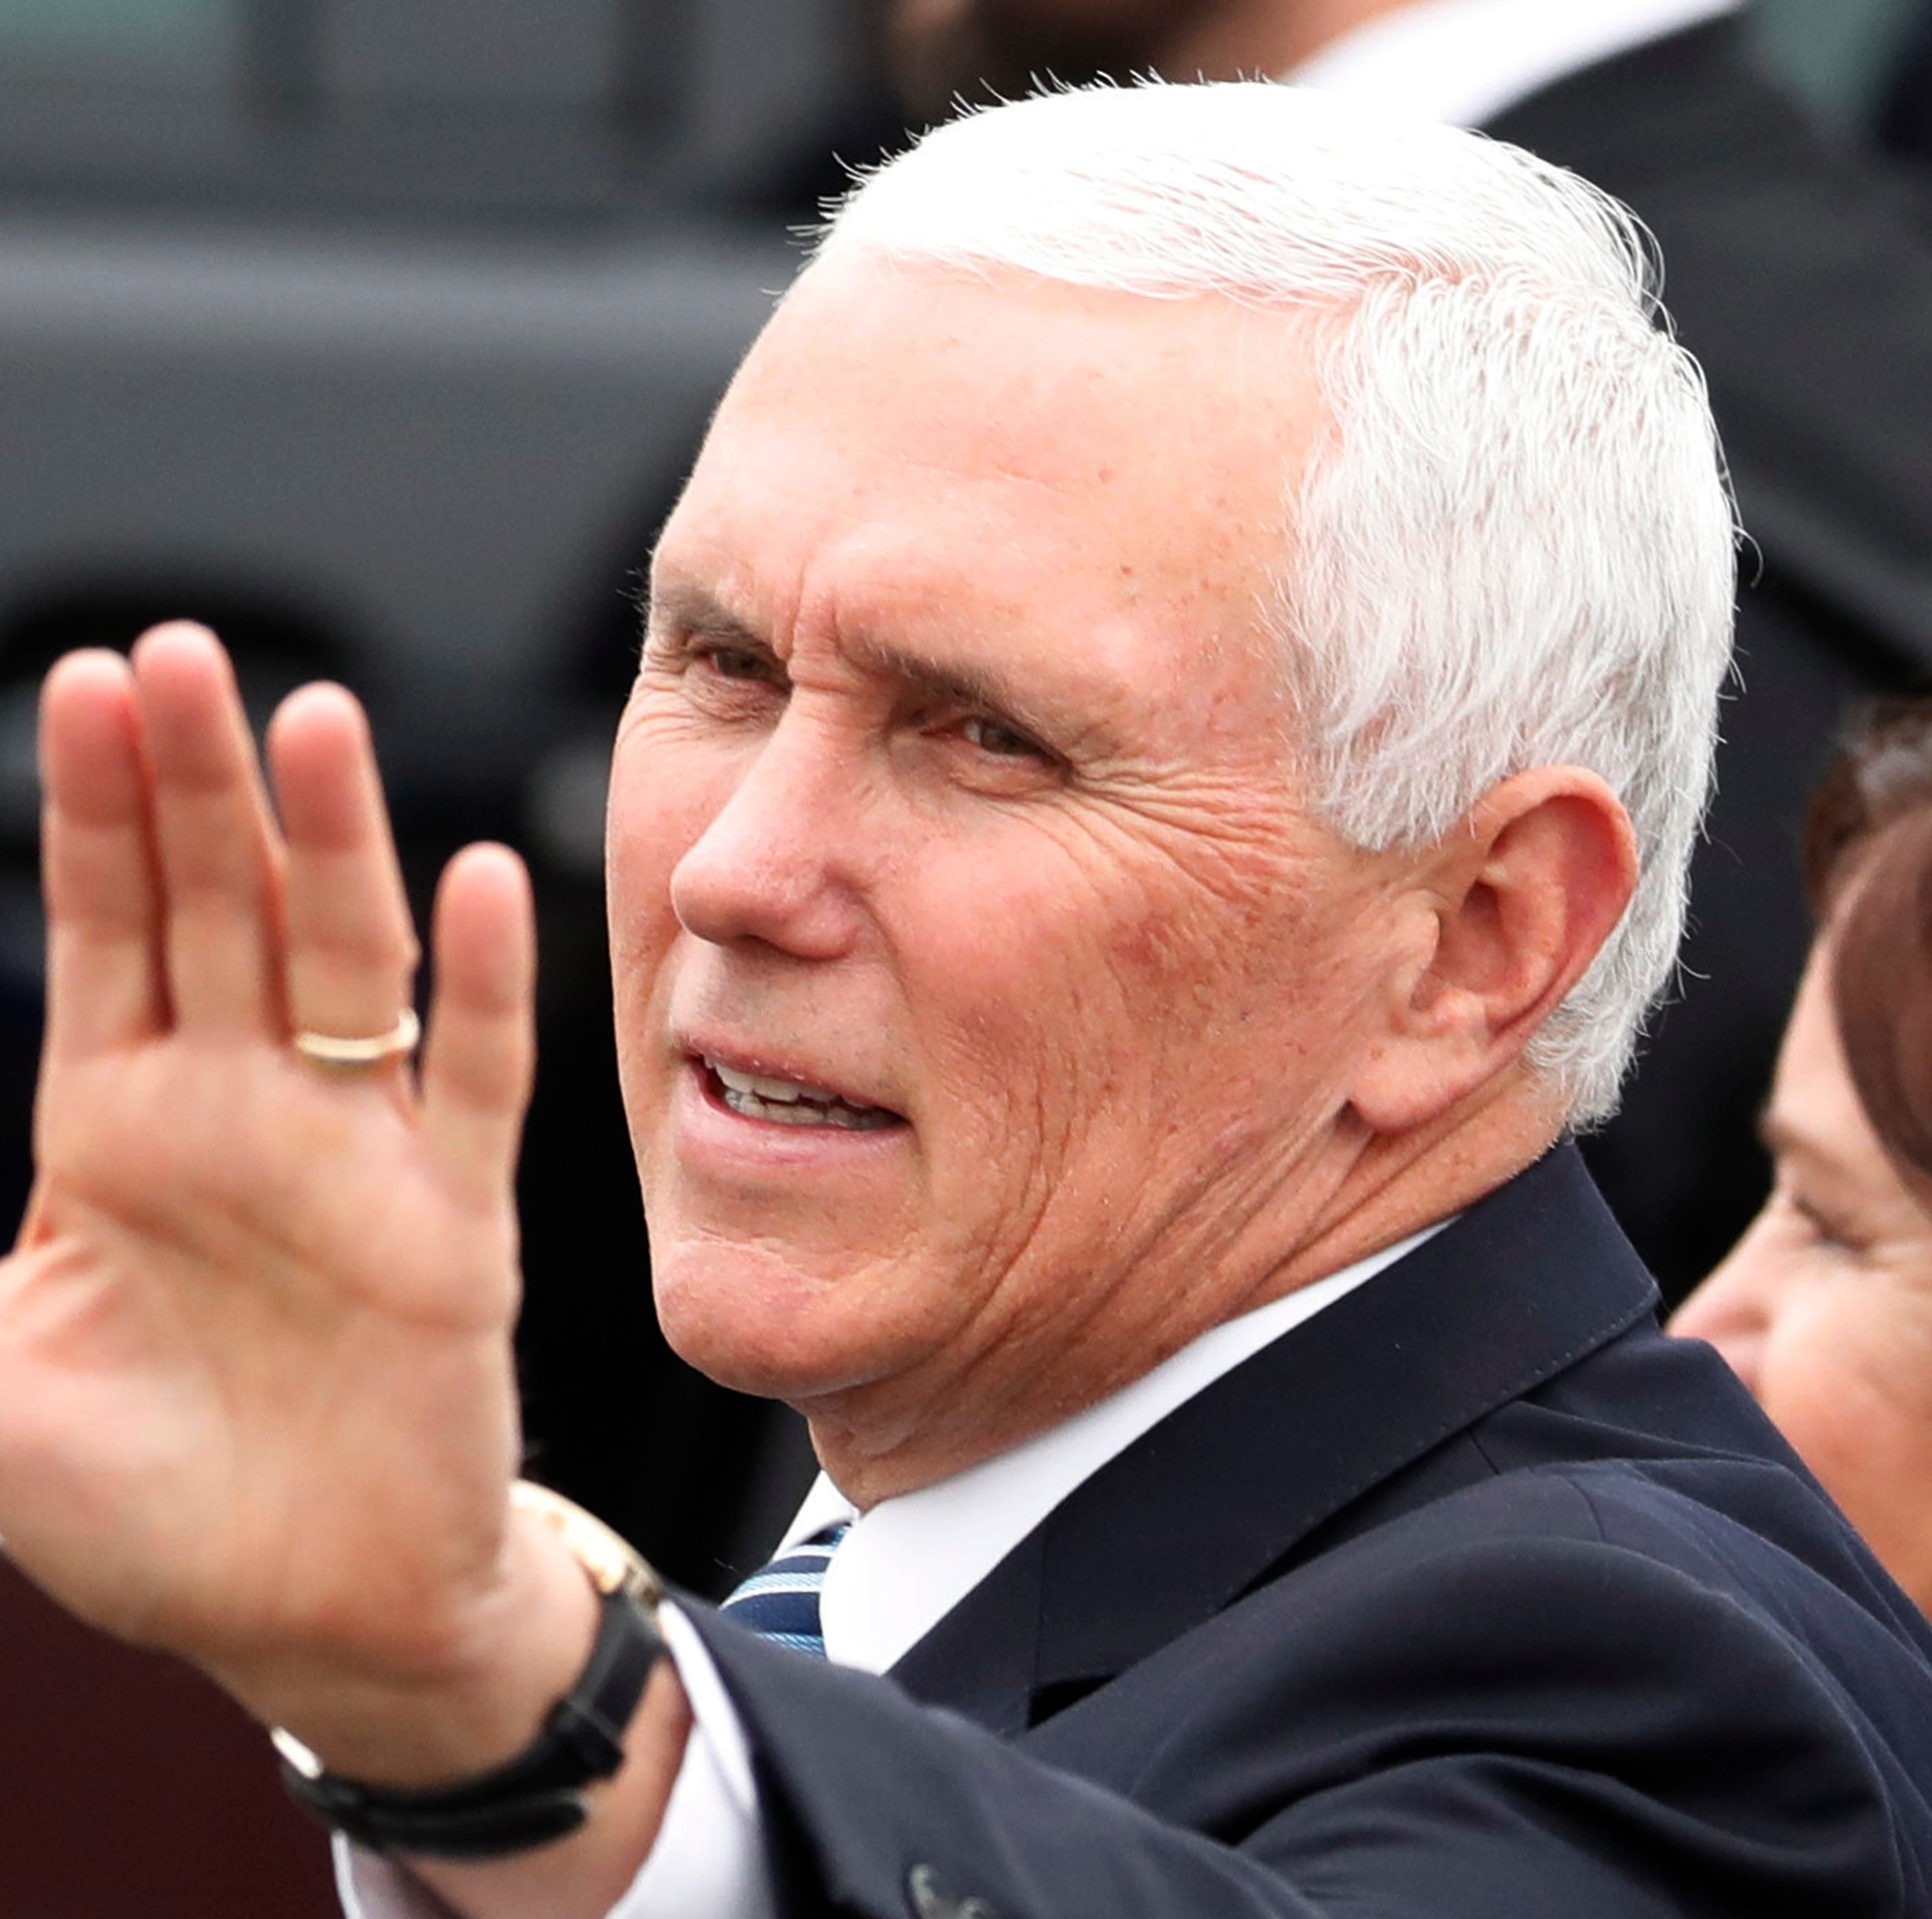 Vice President Mike Pence visits Guam